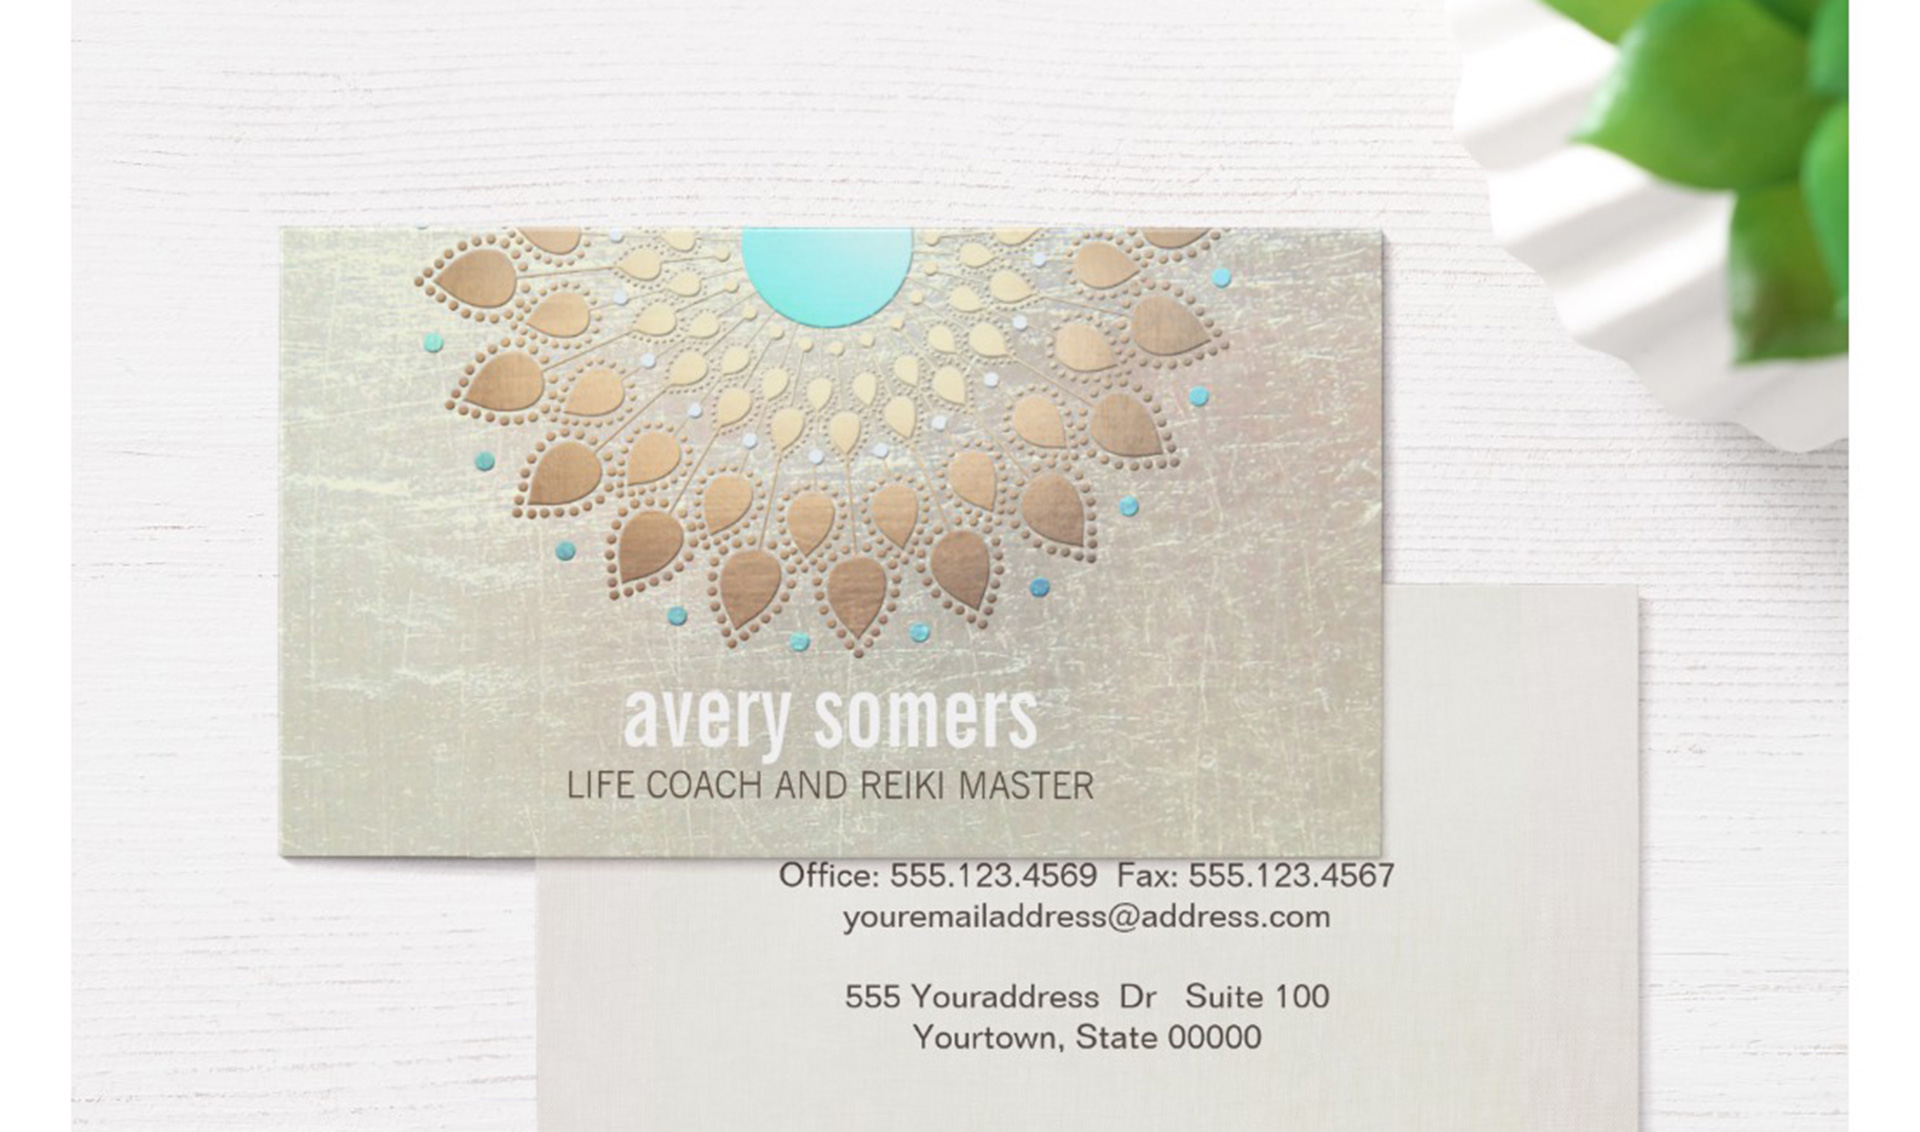 Reiki-Business-Card-Design-5-Designs-You-Need-To-See